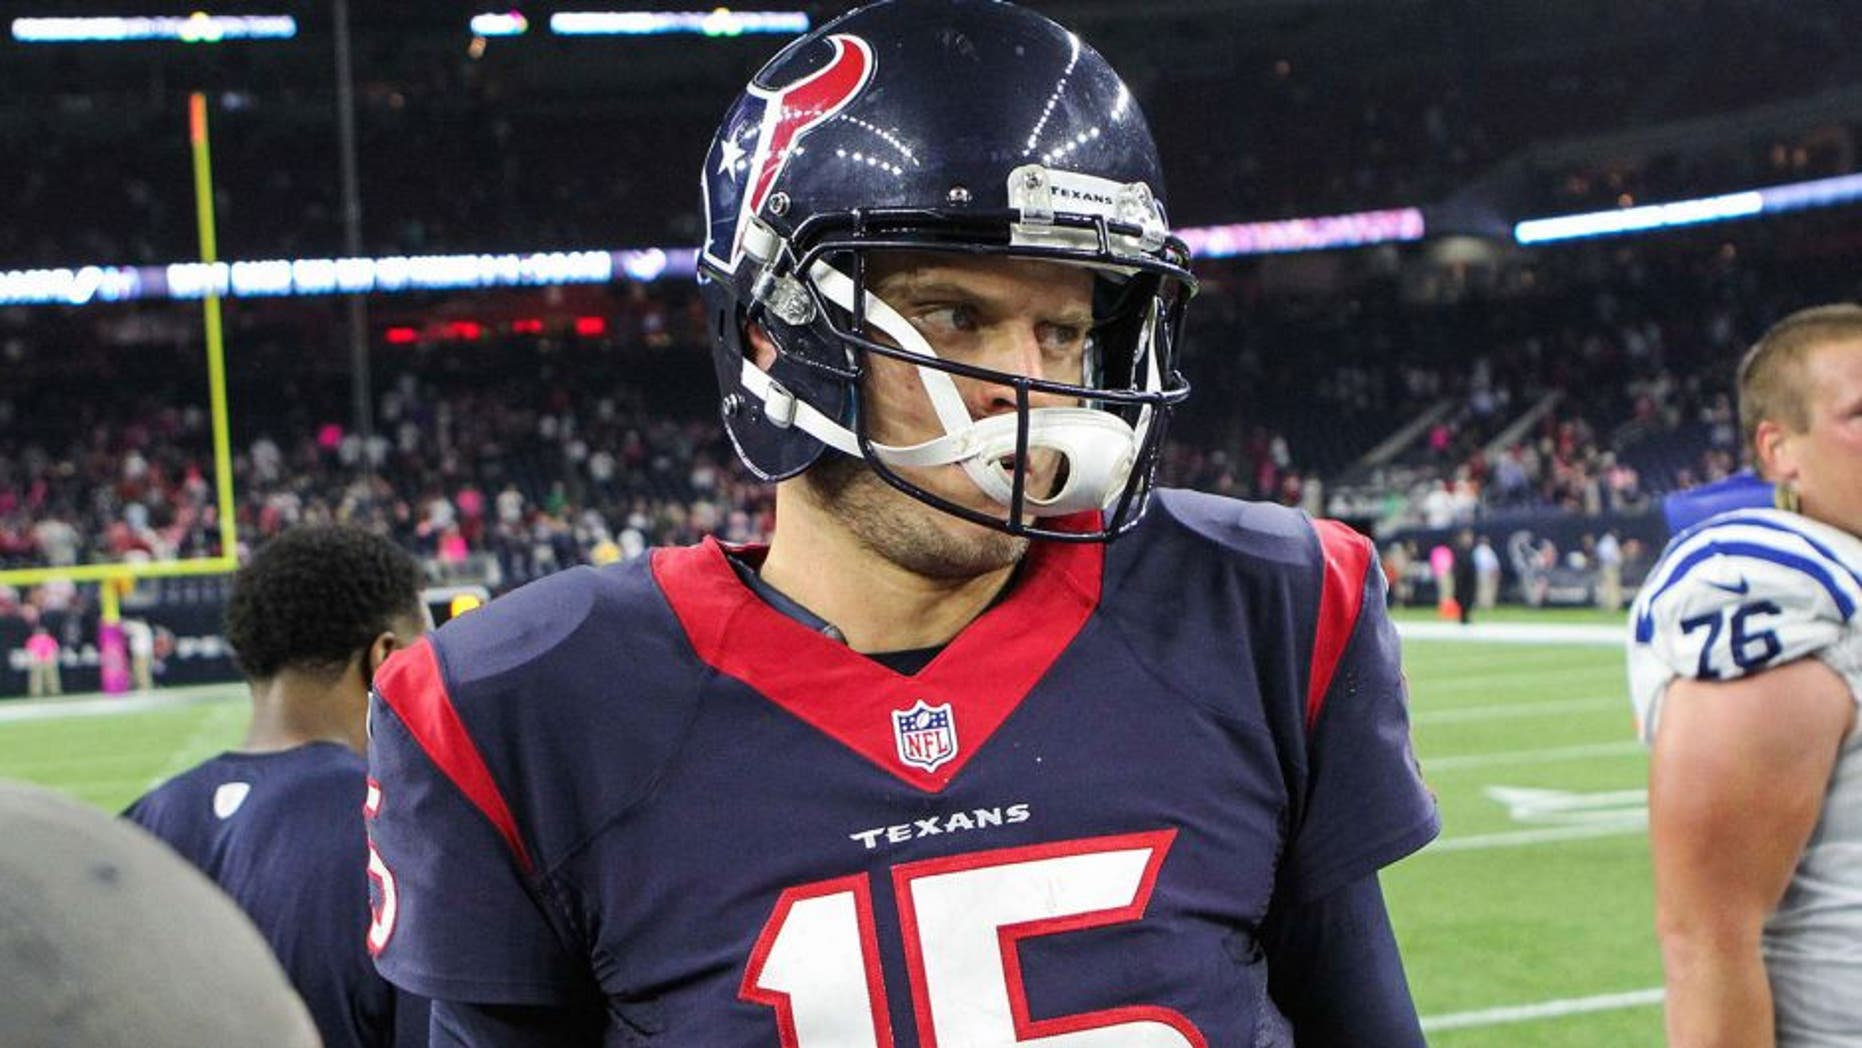 Oct 8, 2015; Houston, TX, USA; Houston Texans quarterback Ryan Mallett (15) after a game against the Indianapolis Colts at NRG Stadium. Mandatory Credit: Troy Taormina-USA TODAY Sports